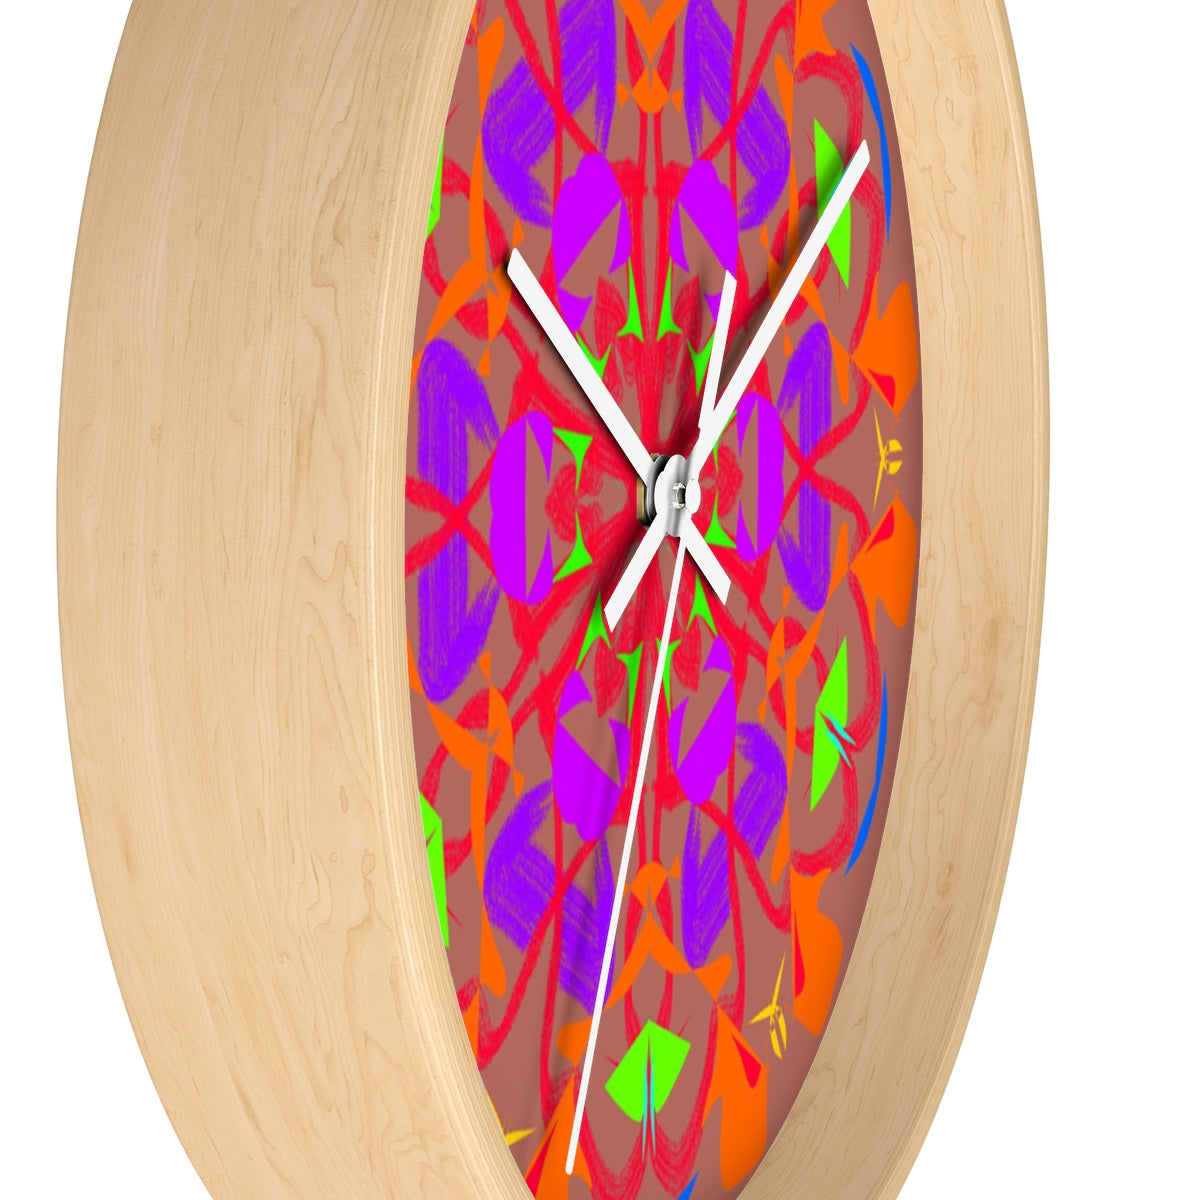 Wall clock - Hut Charged | Designed by @remlor